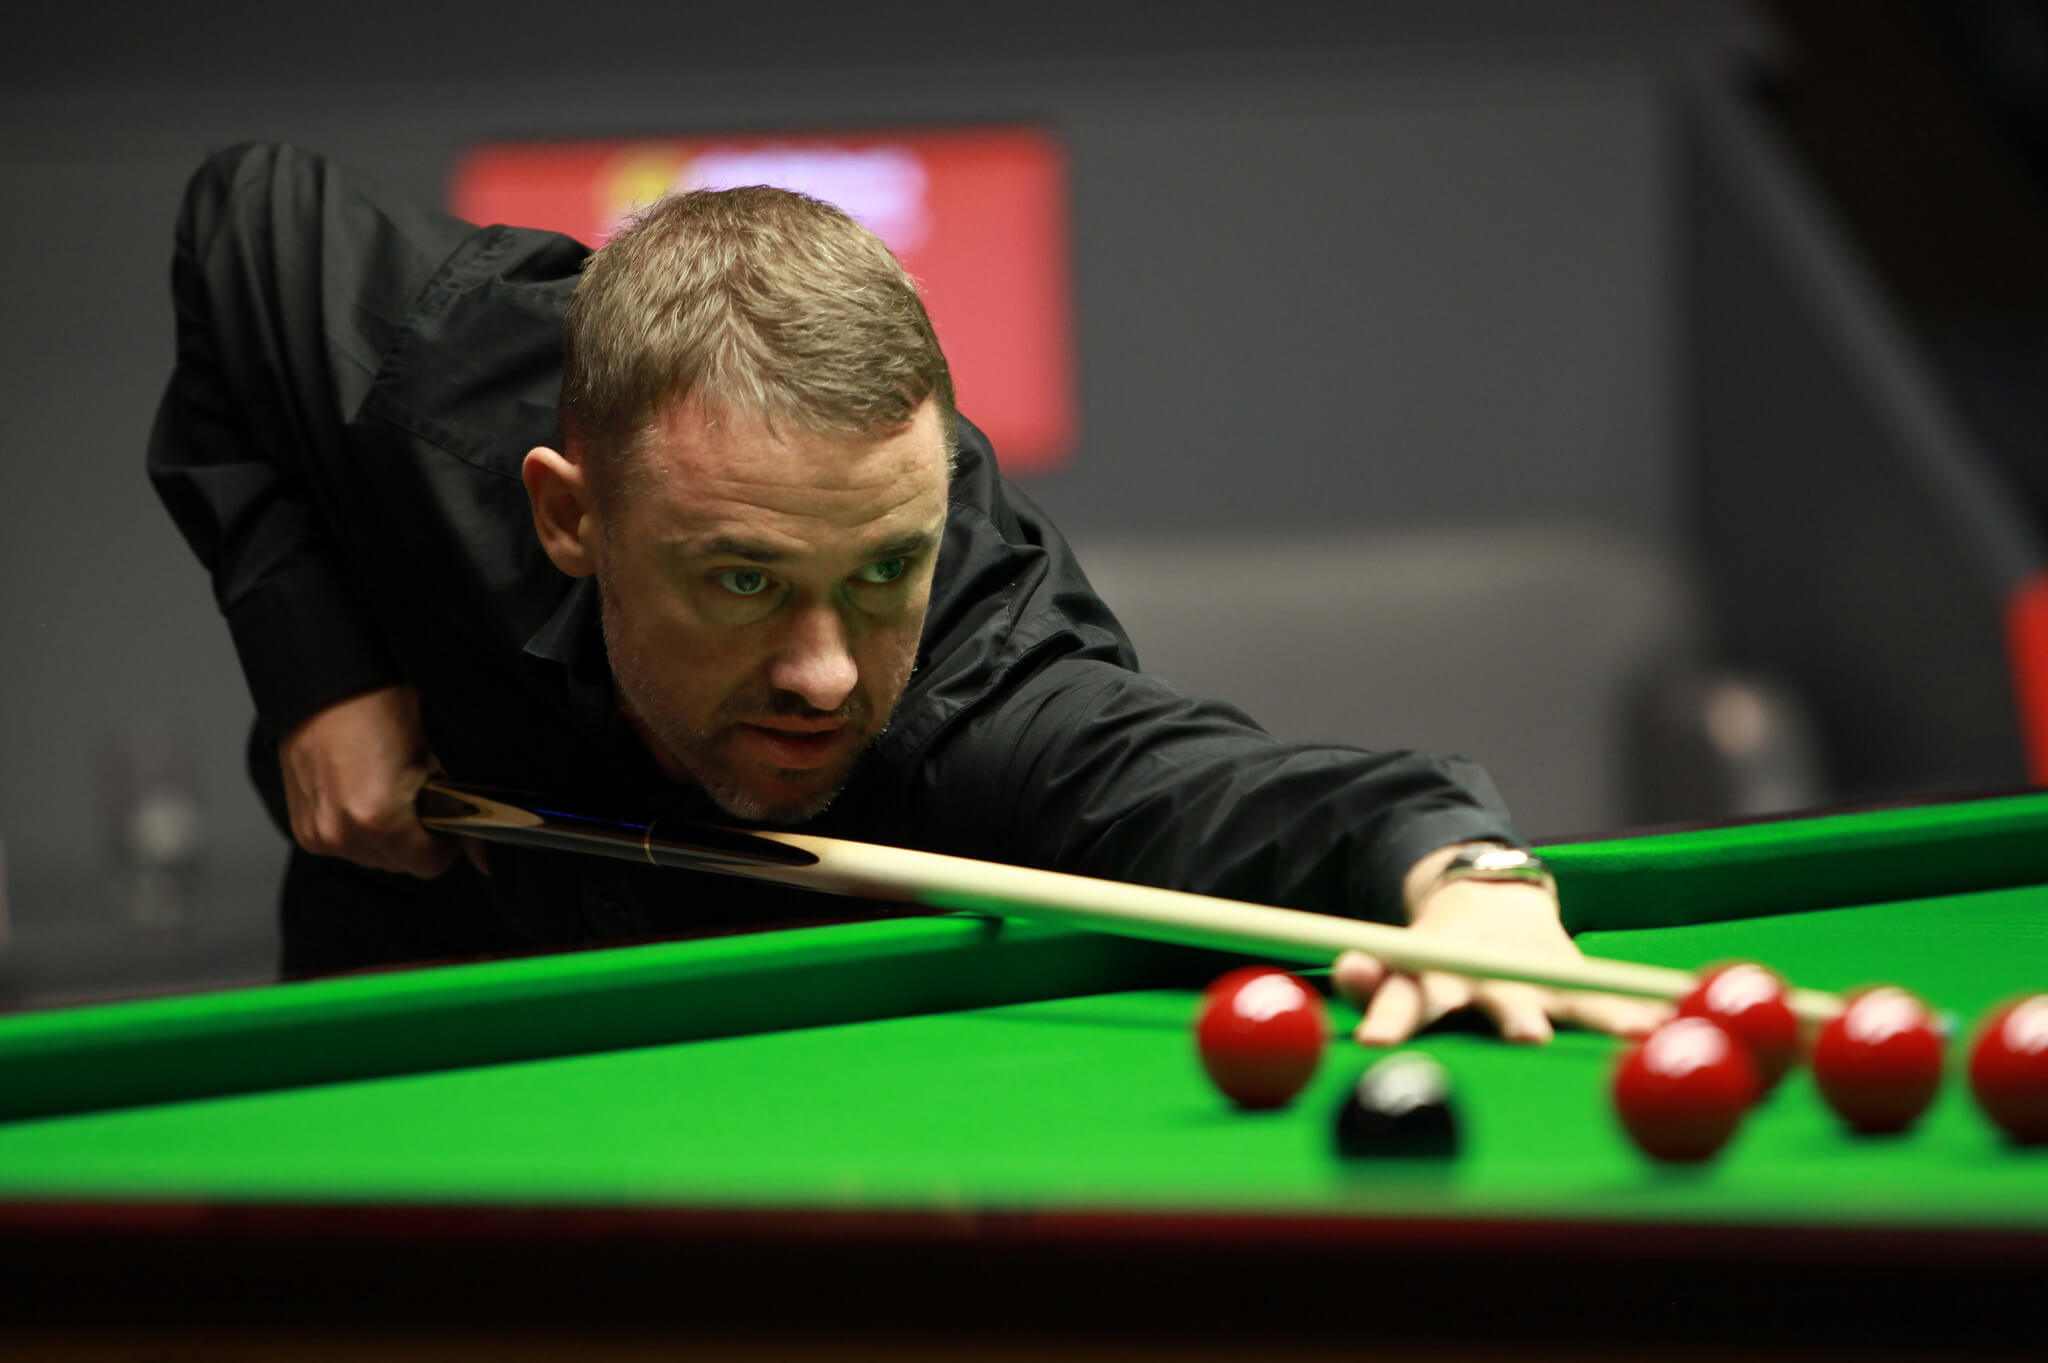 Gibraltar Open Snooker 2021 live stream: The essential guide of how to watch live online